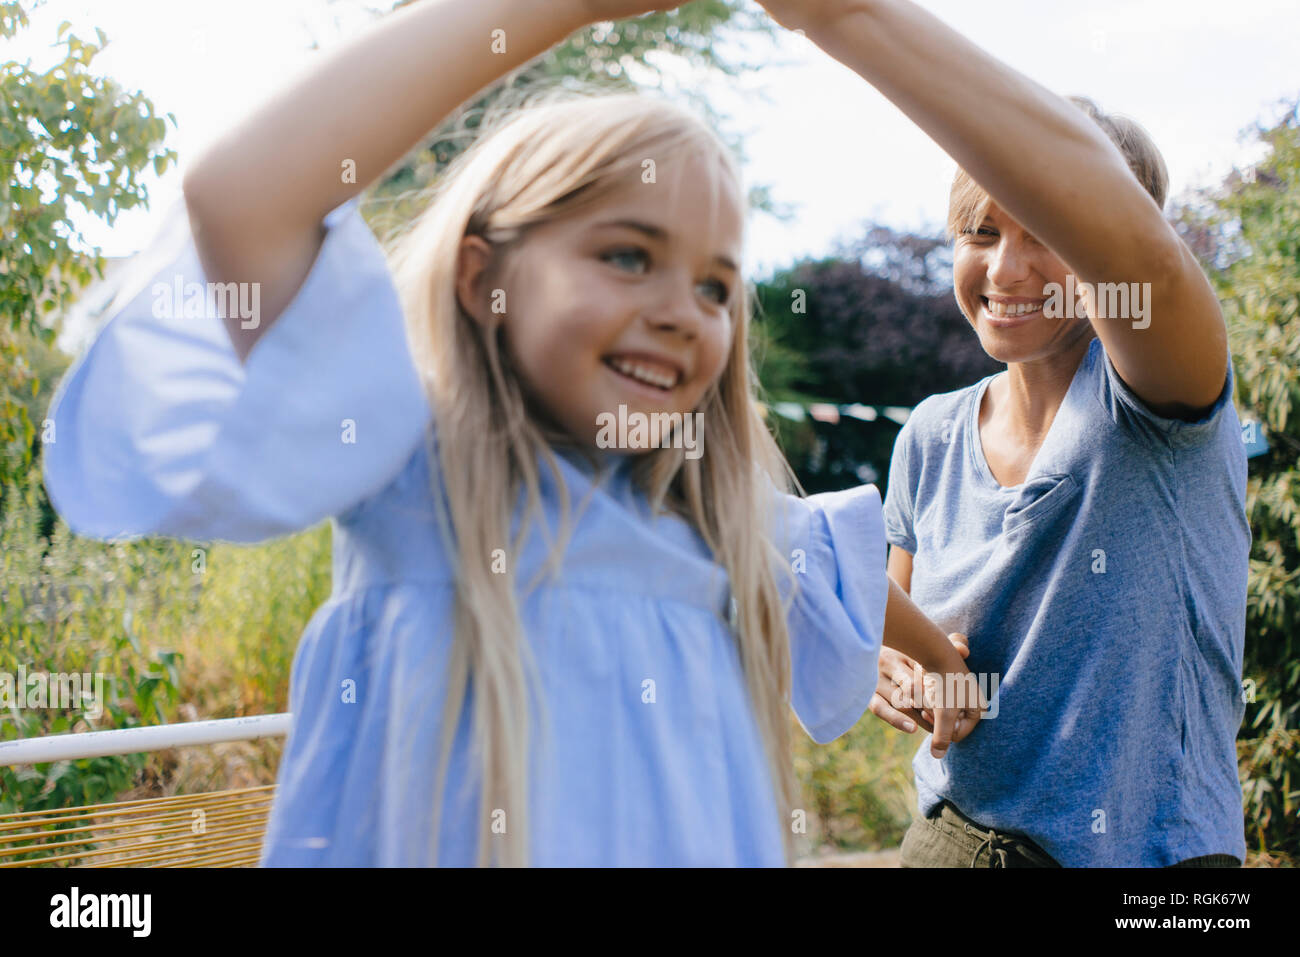 Mother and daughter having fun in garden Stock Photo